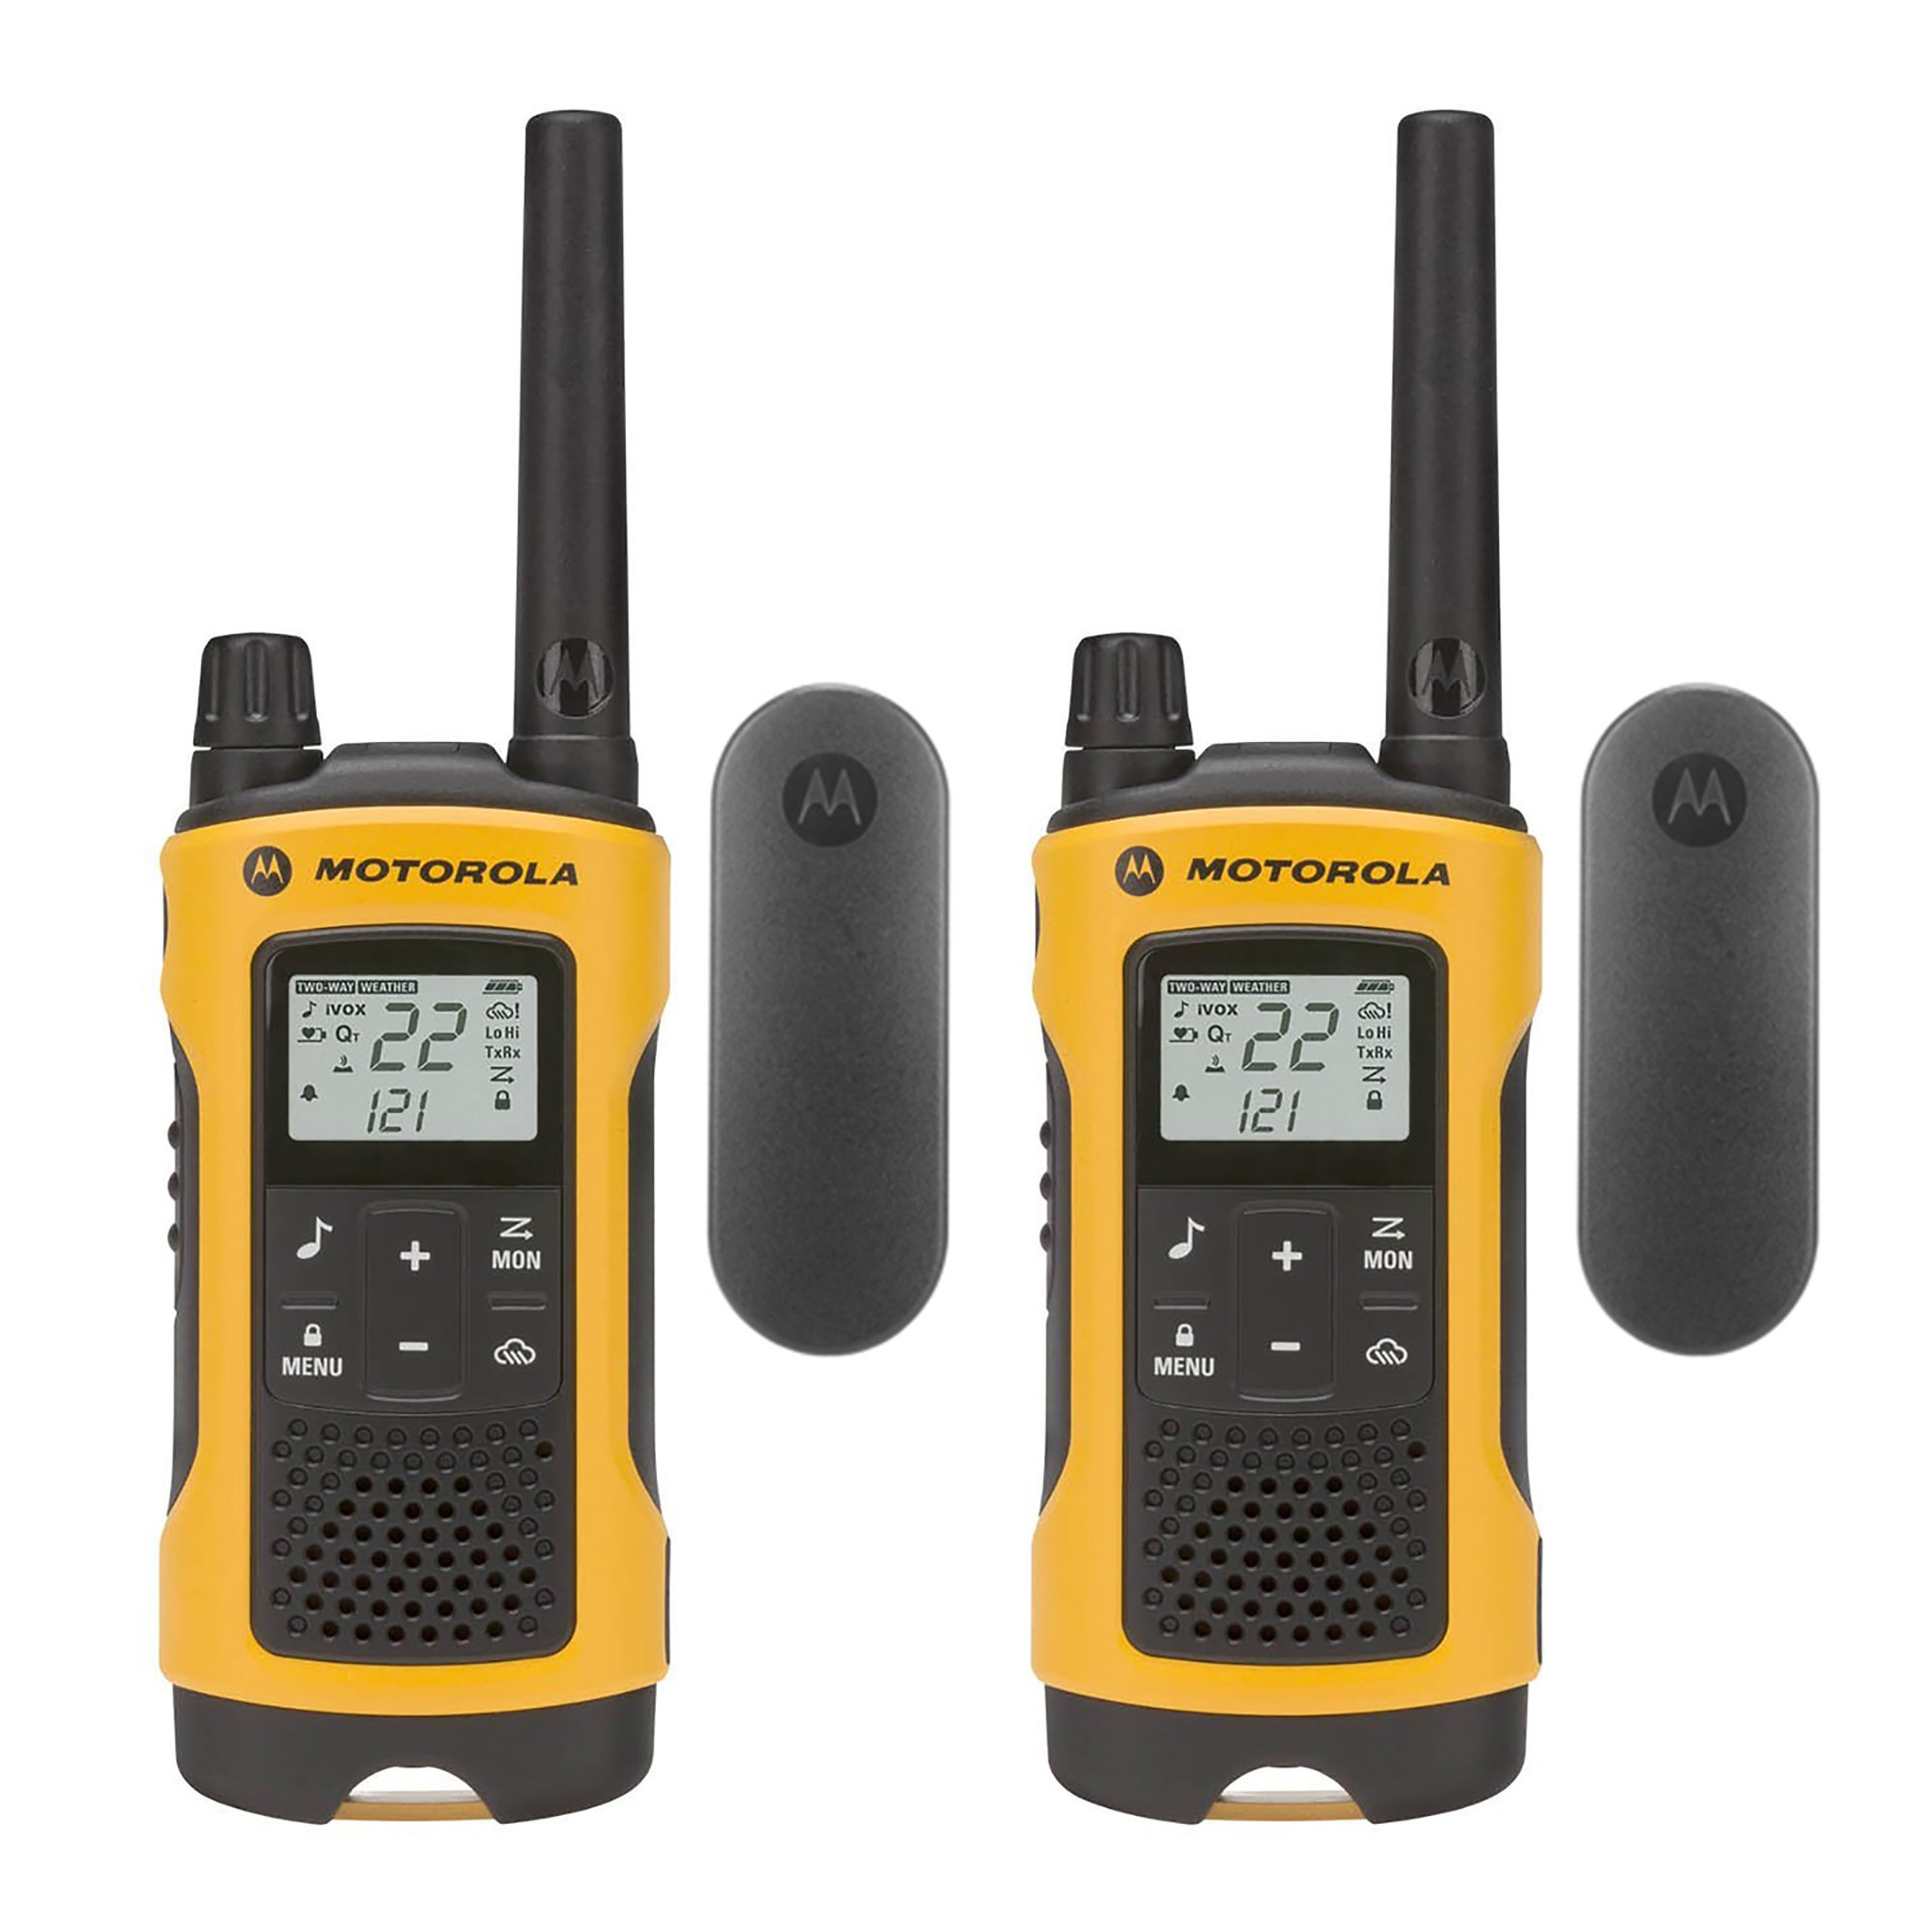 Motorola Talkabout T402 Rechargeable Two-Way Radios (2-Pack)